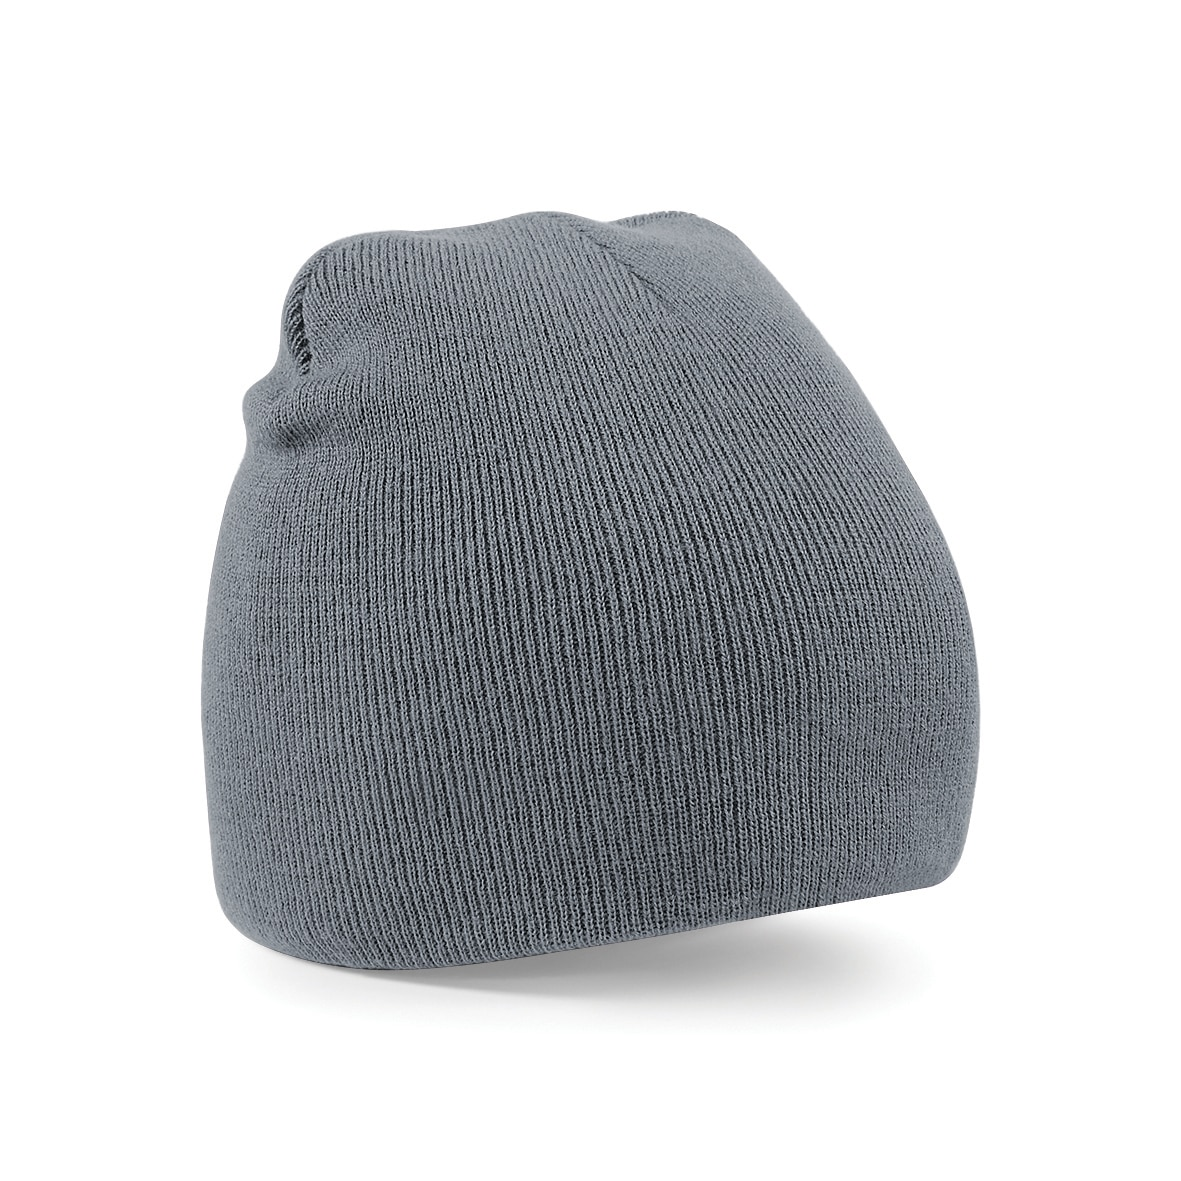 Graphite Grey Embroidered Personalised Beanies from Jageto Embroidery and Print in Essex, UK